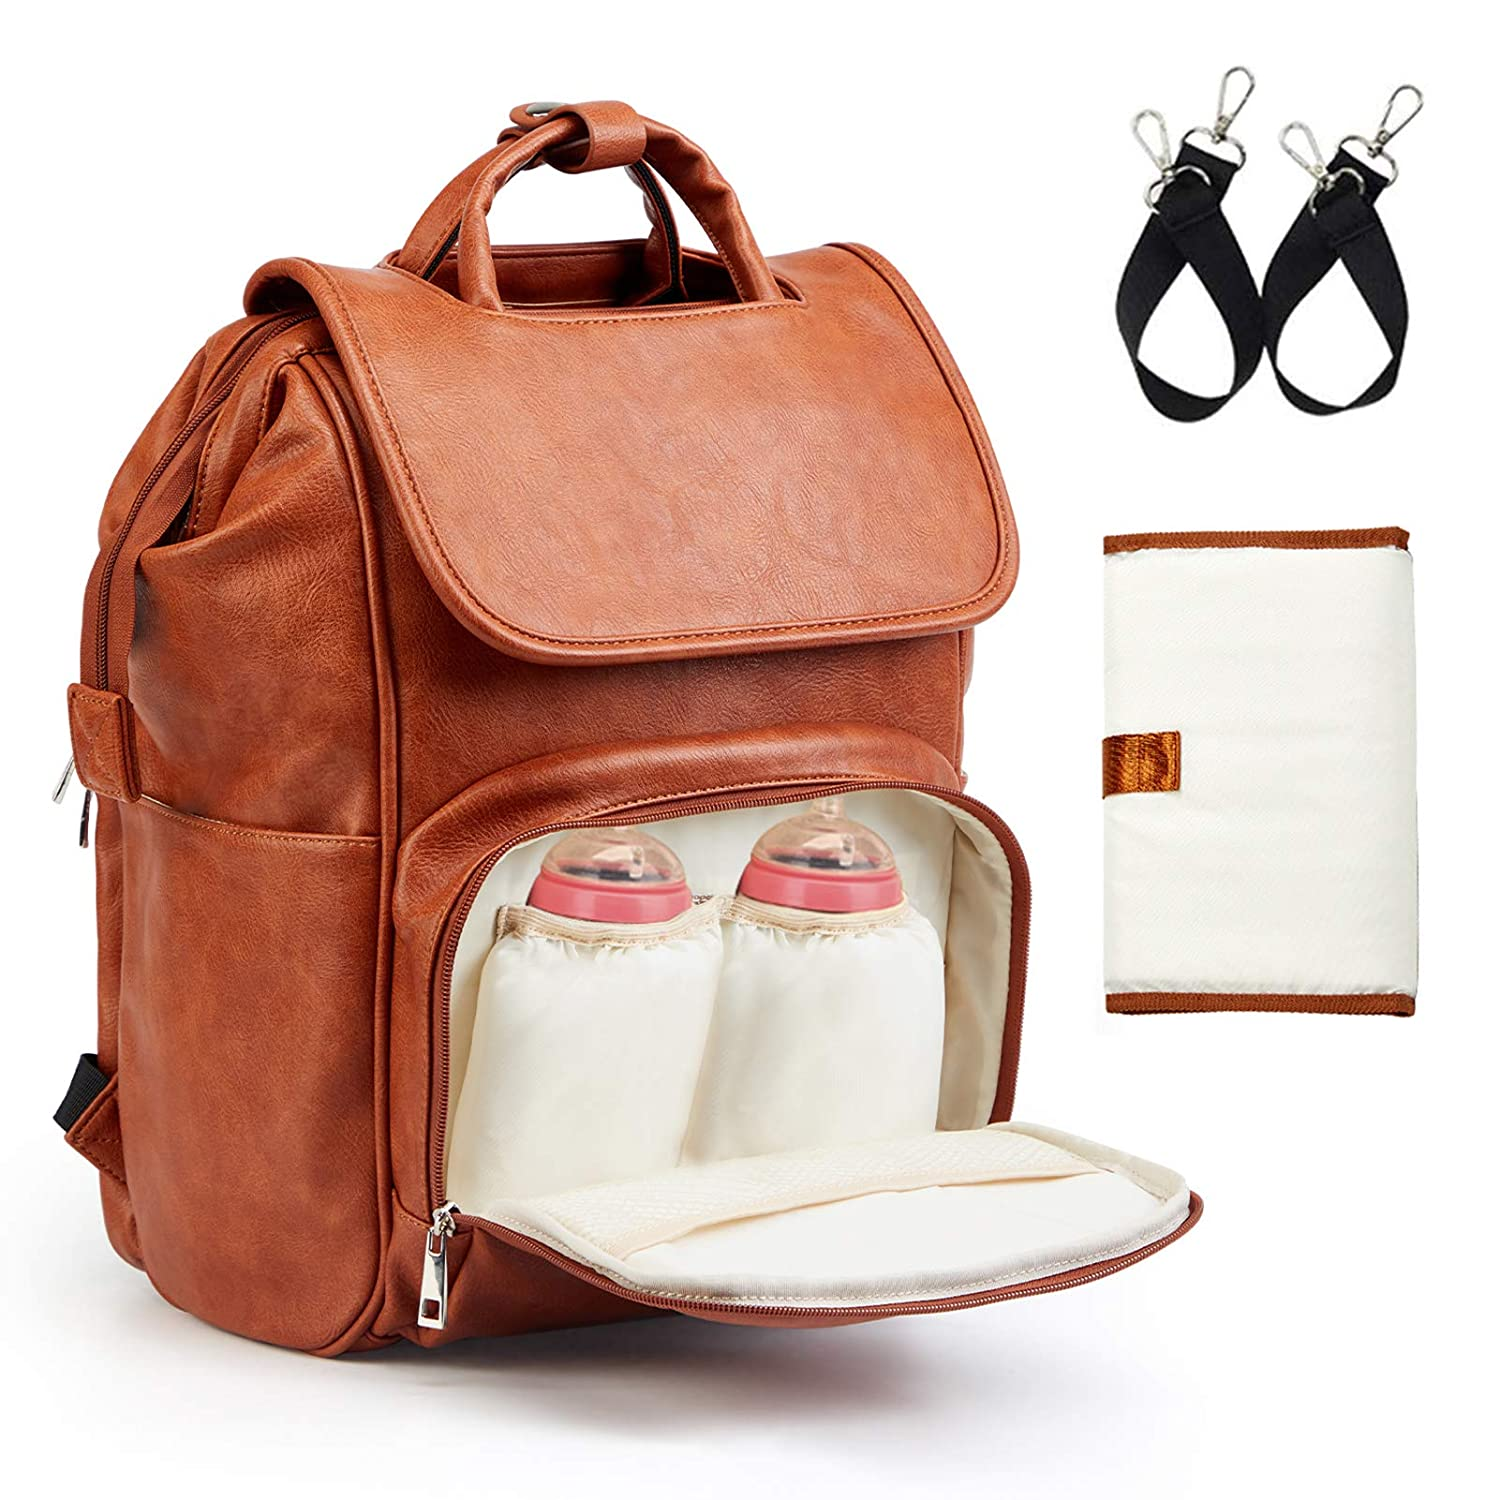 Solim Leather Diaper Bag Backpack ,Unisex Baby Travel Bag with Changing Mat